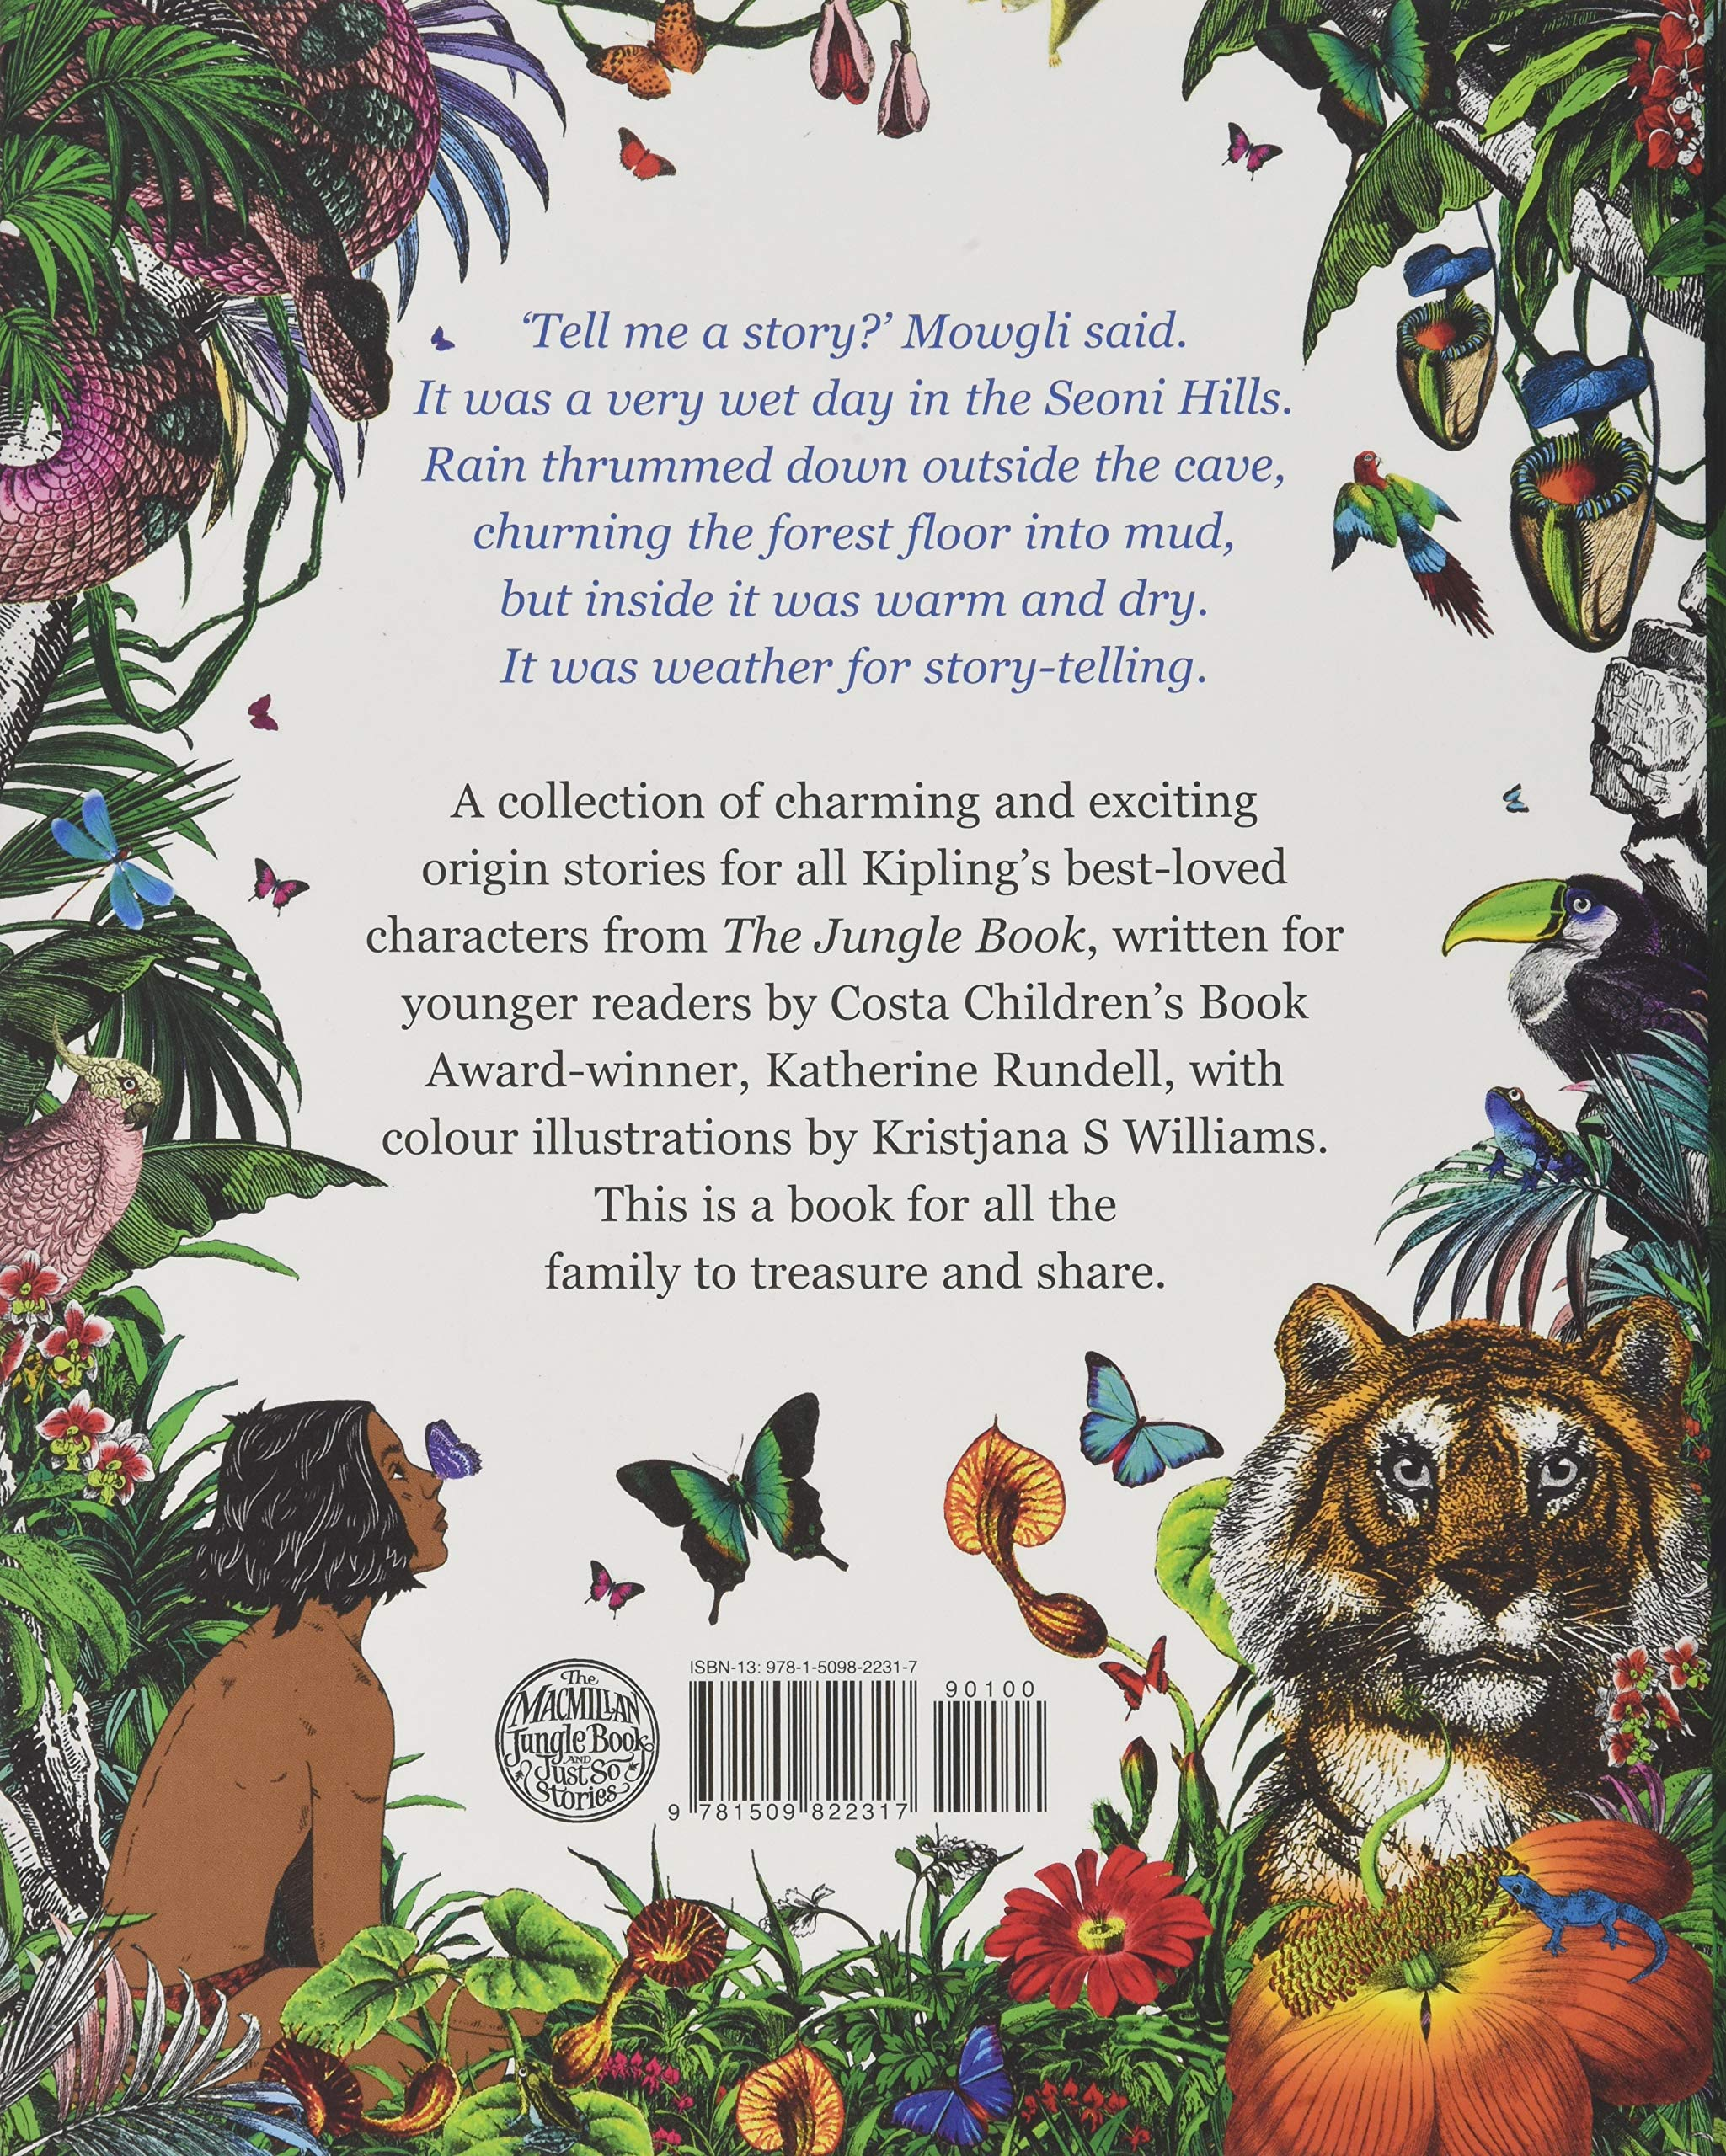 A description of the synopsis of the book the jungle